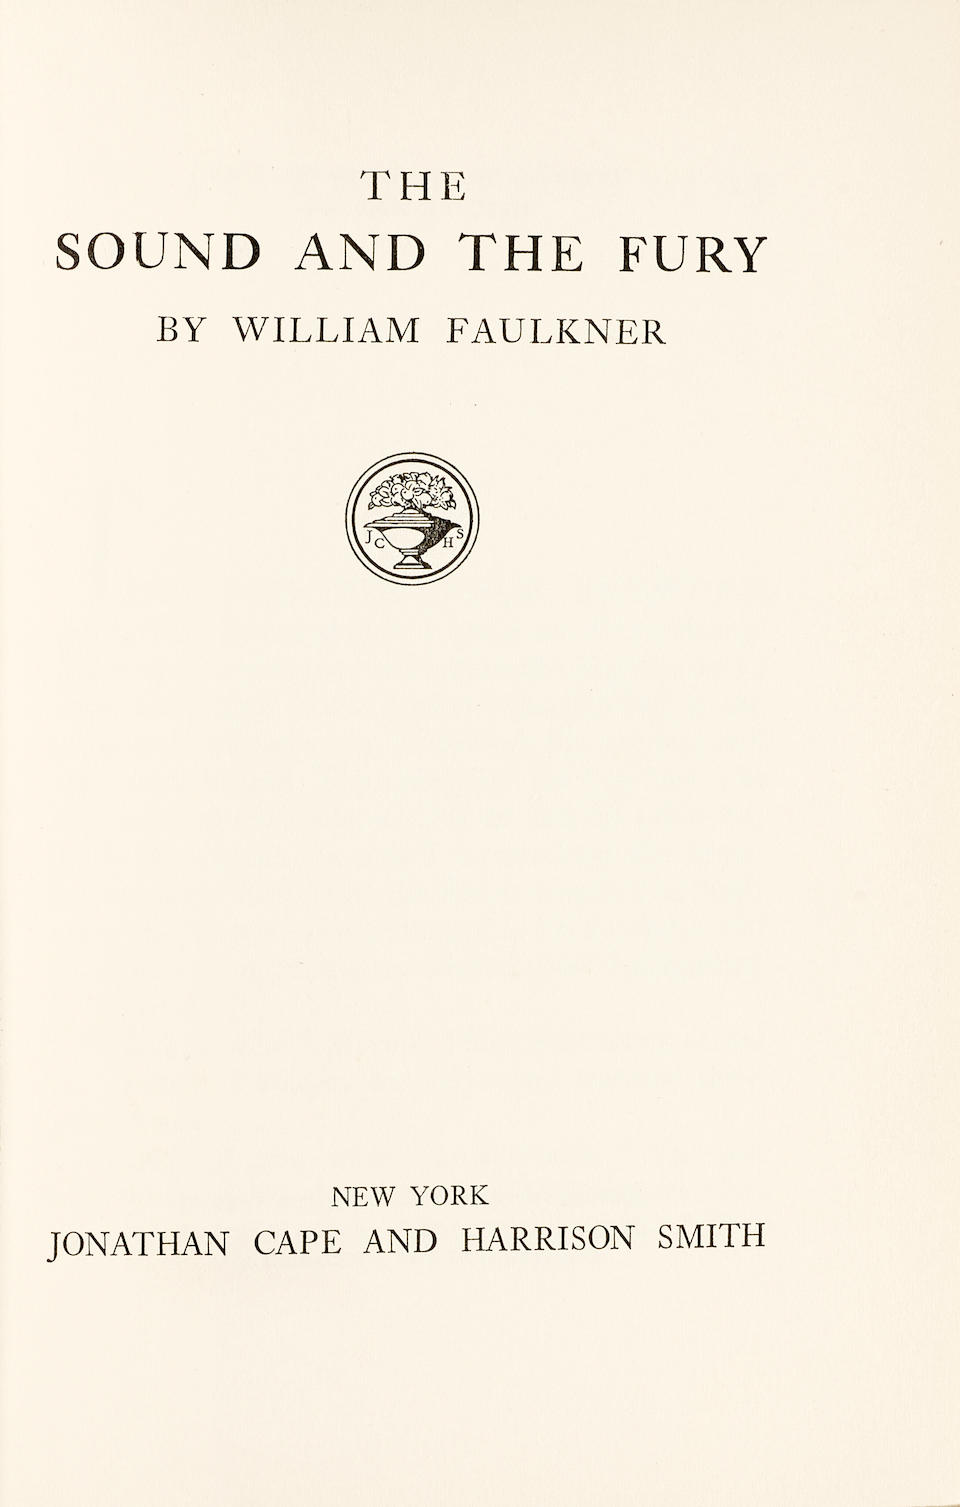 FAULKNER, WILLIAM. 1897-1962. The Sound and the Fury.  New York: Jonathan Cape & Harrison Smith, 1929.